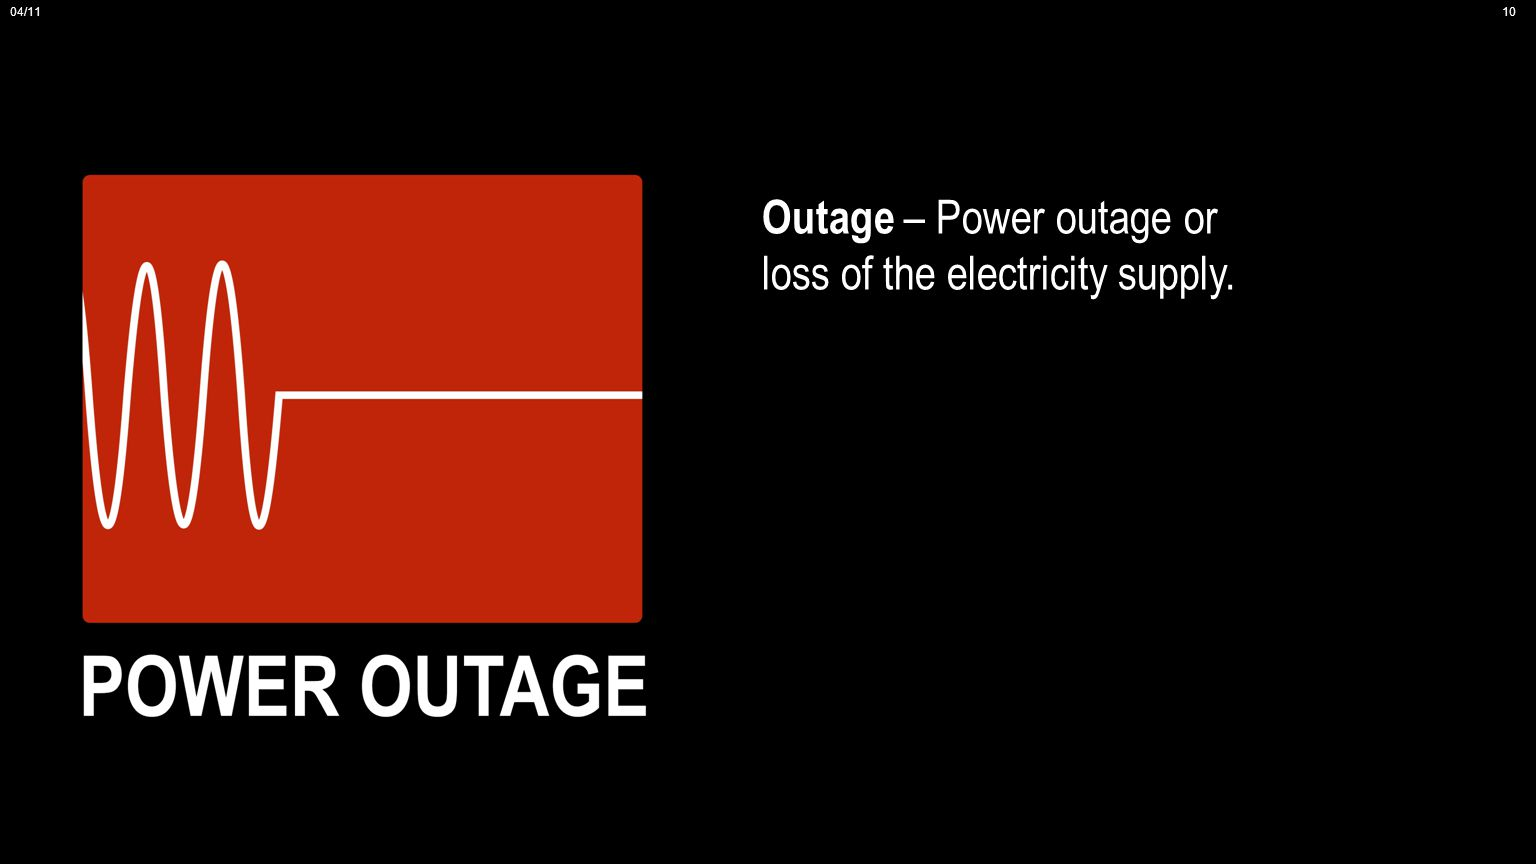 Outage – Power outage or loss of the electricity supply. 04/1110